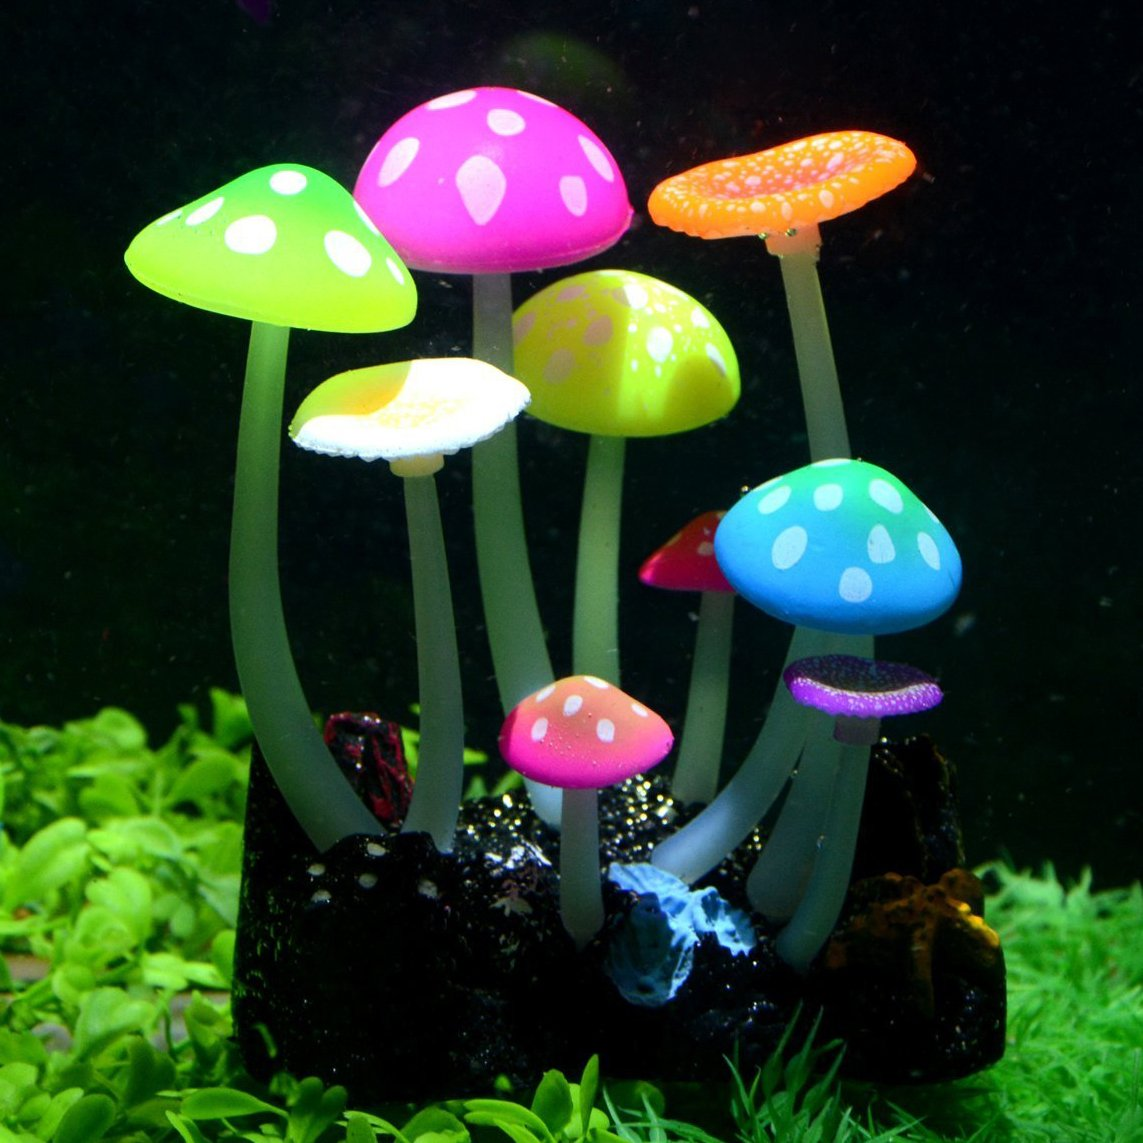 Uniclife Glowing Effect Artificial Mushroom Aquarium Plant Decor Ornament Decoration for Fish Tank Landscape